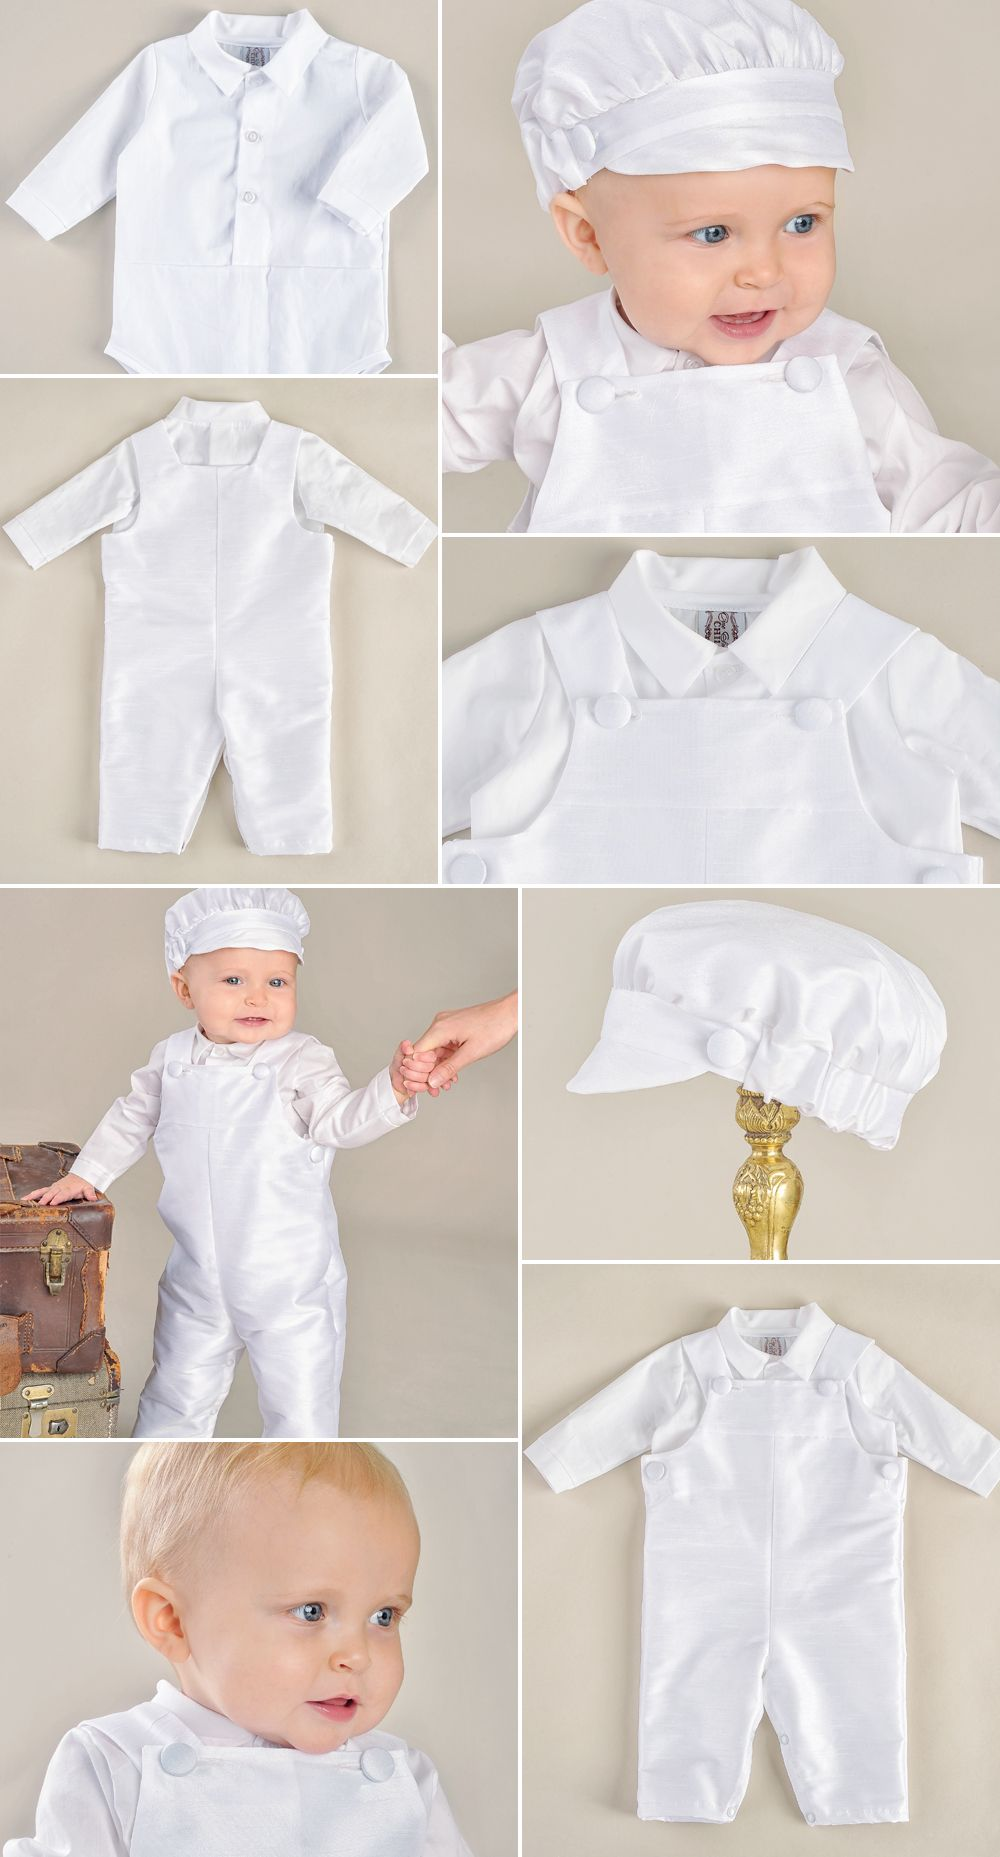 2ff4c51bb Rompers are perfect for Spring and our Jonathan is adorable with it's  matching hat! https